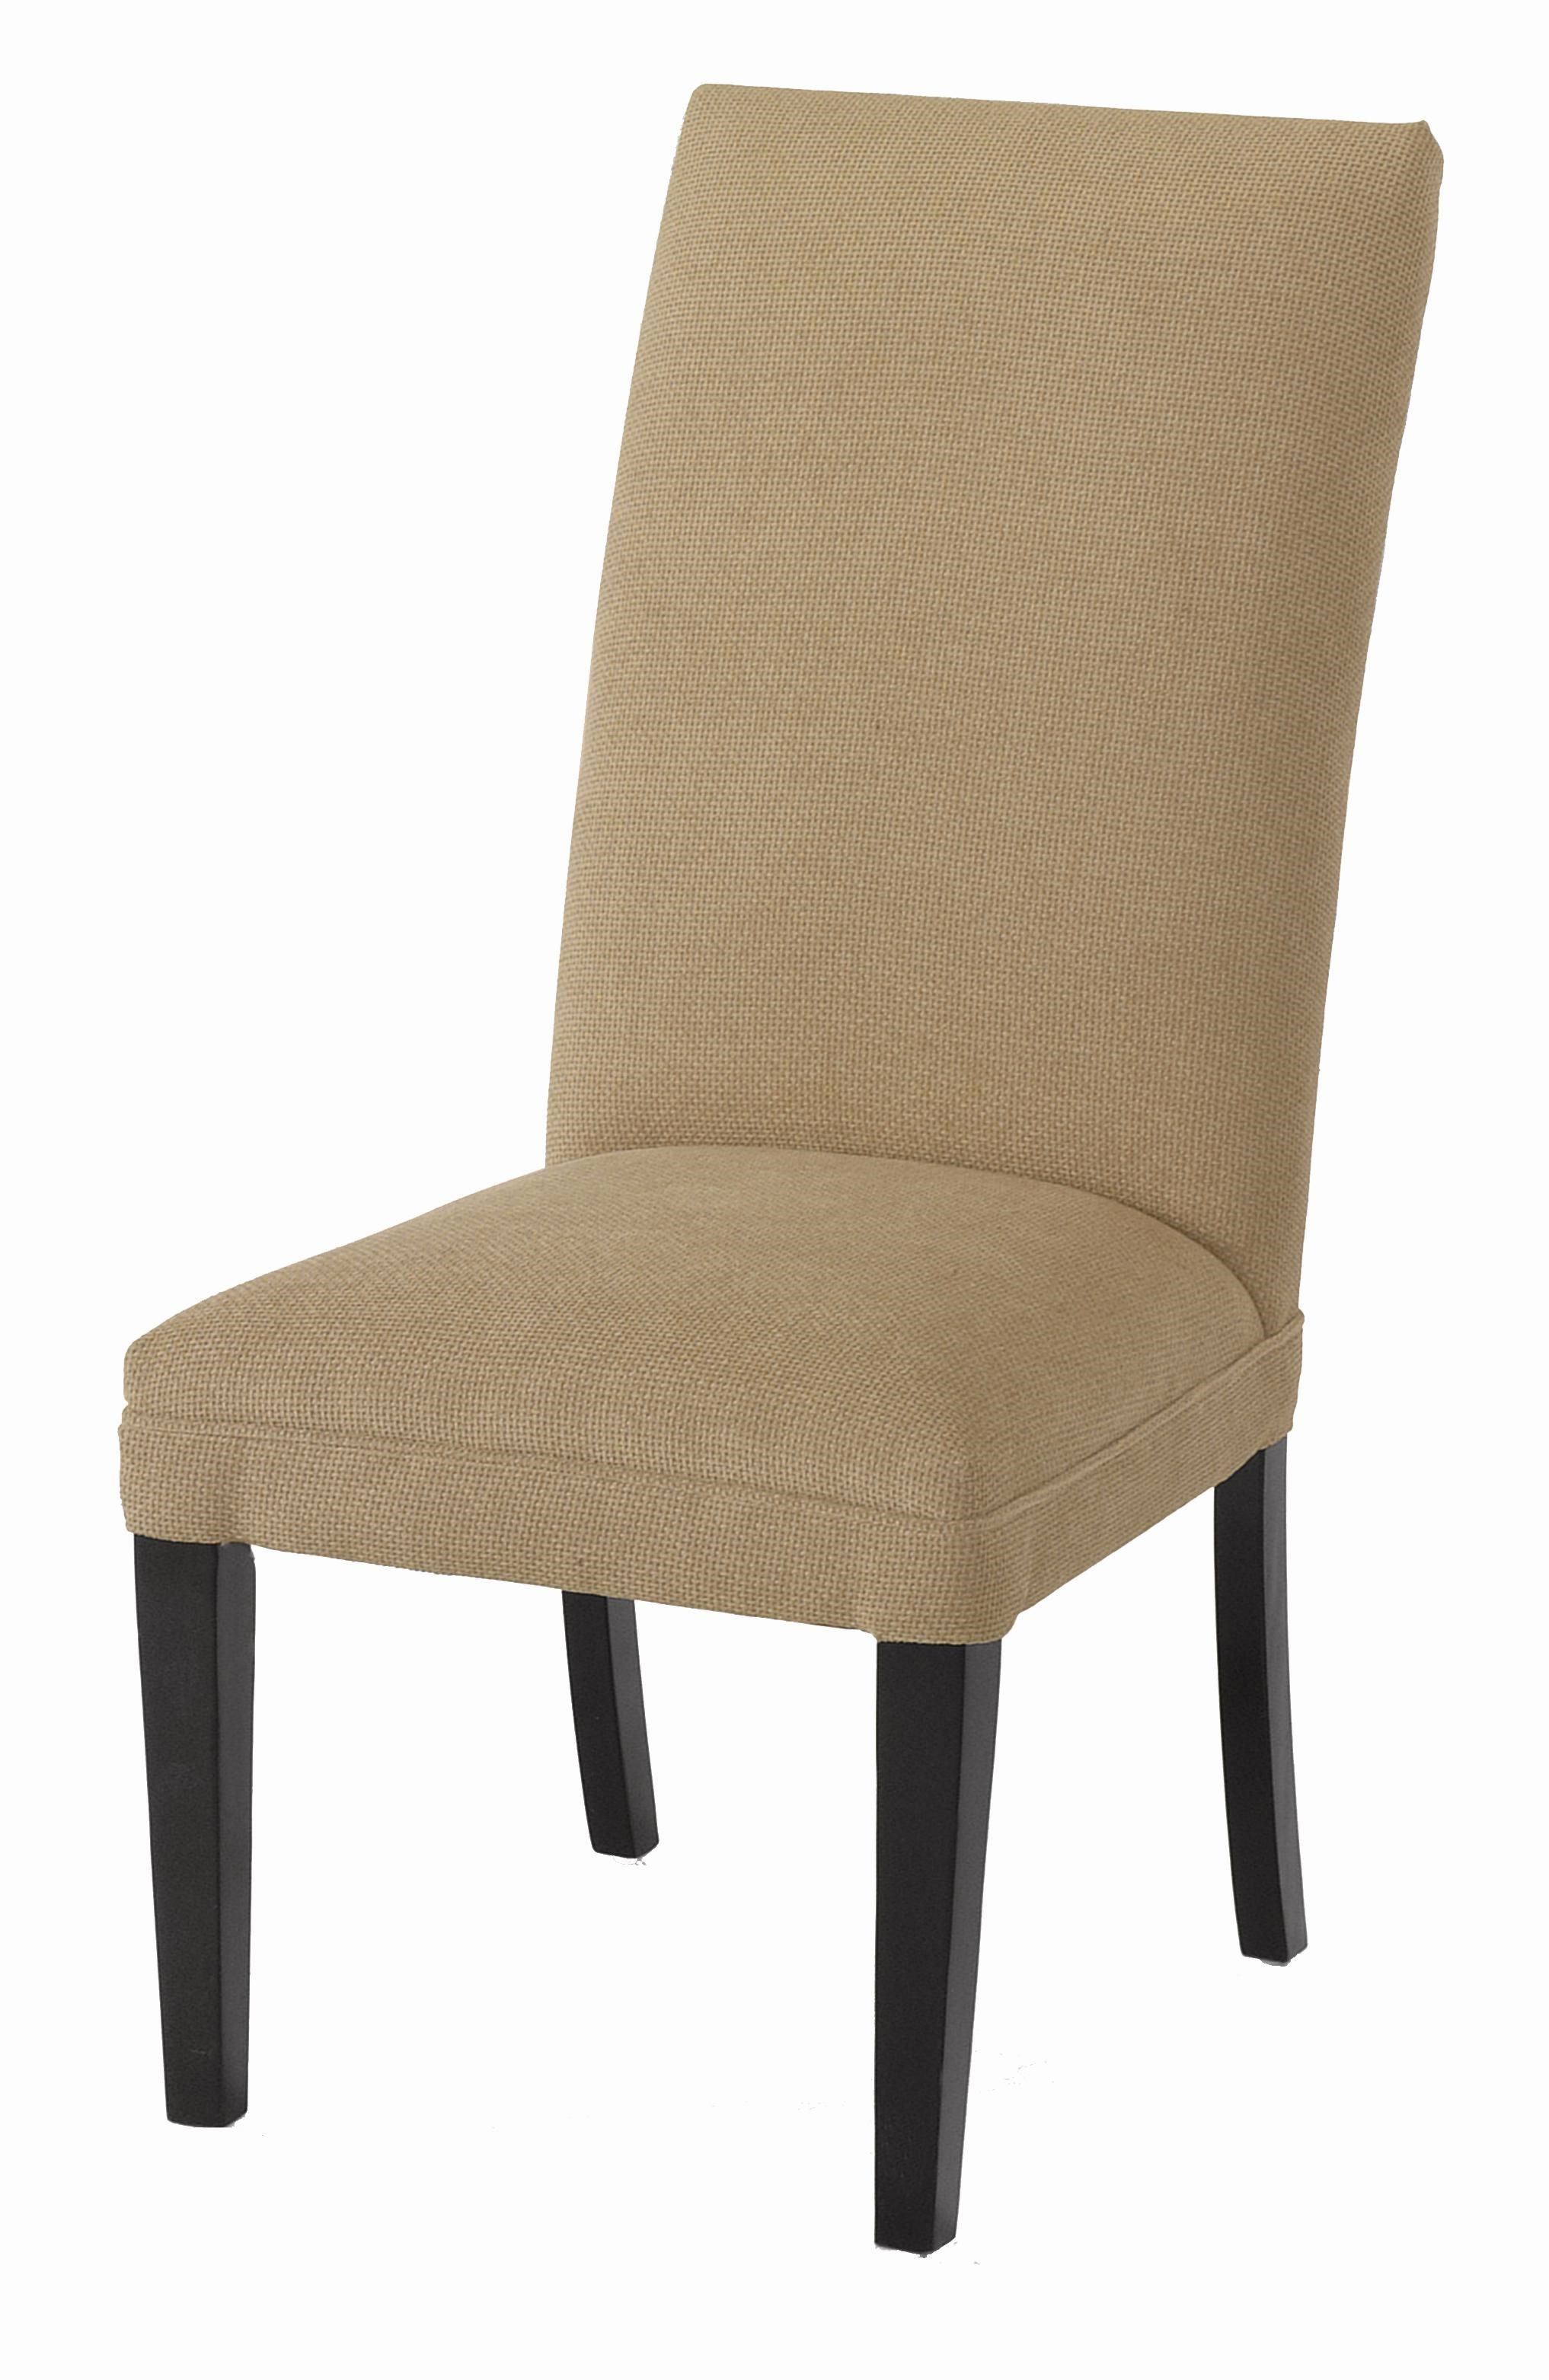 CMI Parson Chairs Dining Side Chair   Hudsonu0027s Furniture   Dining Side Chair